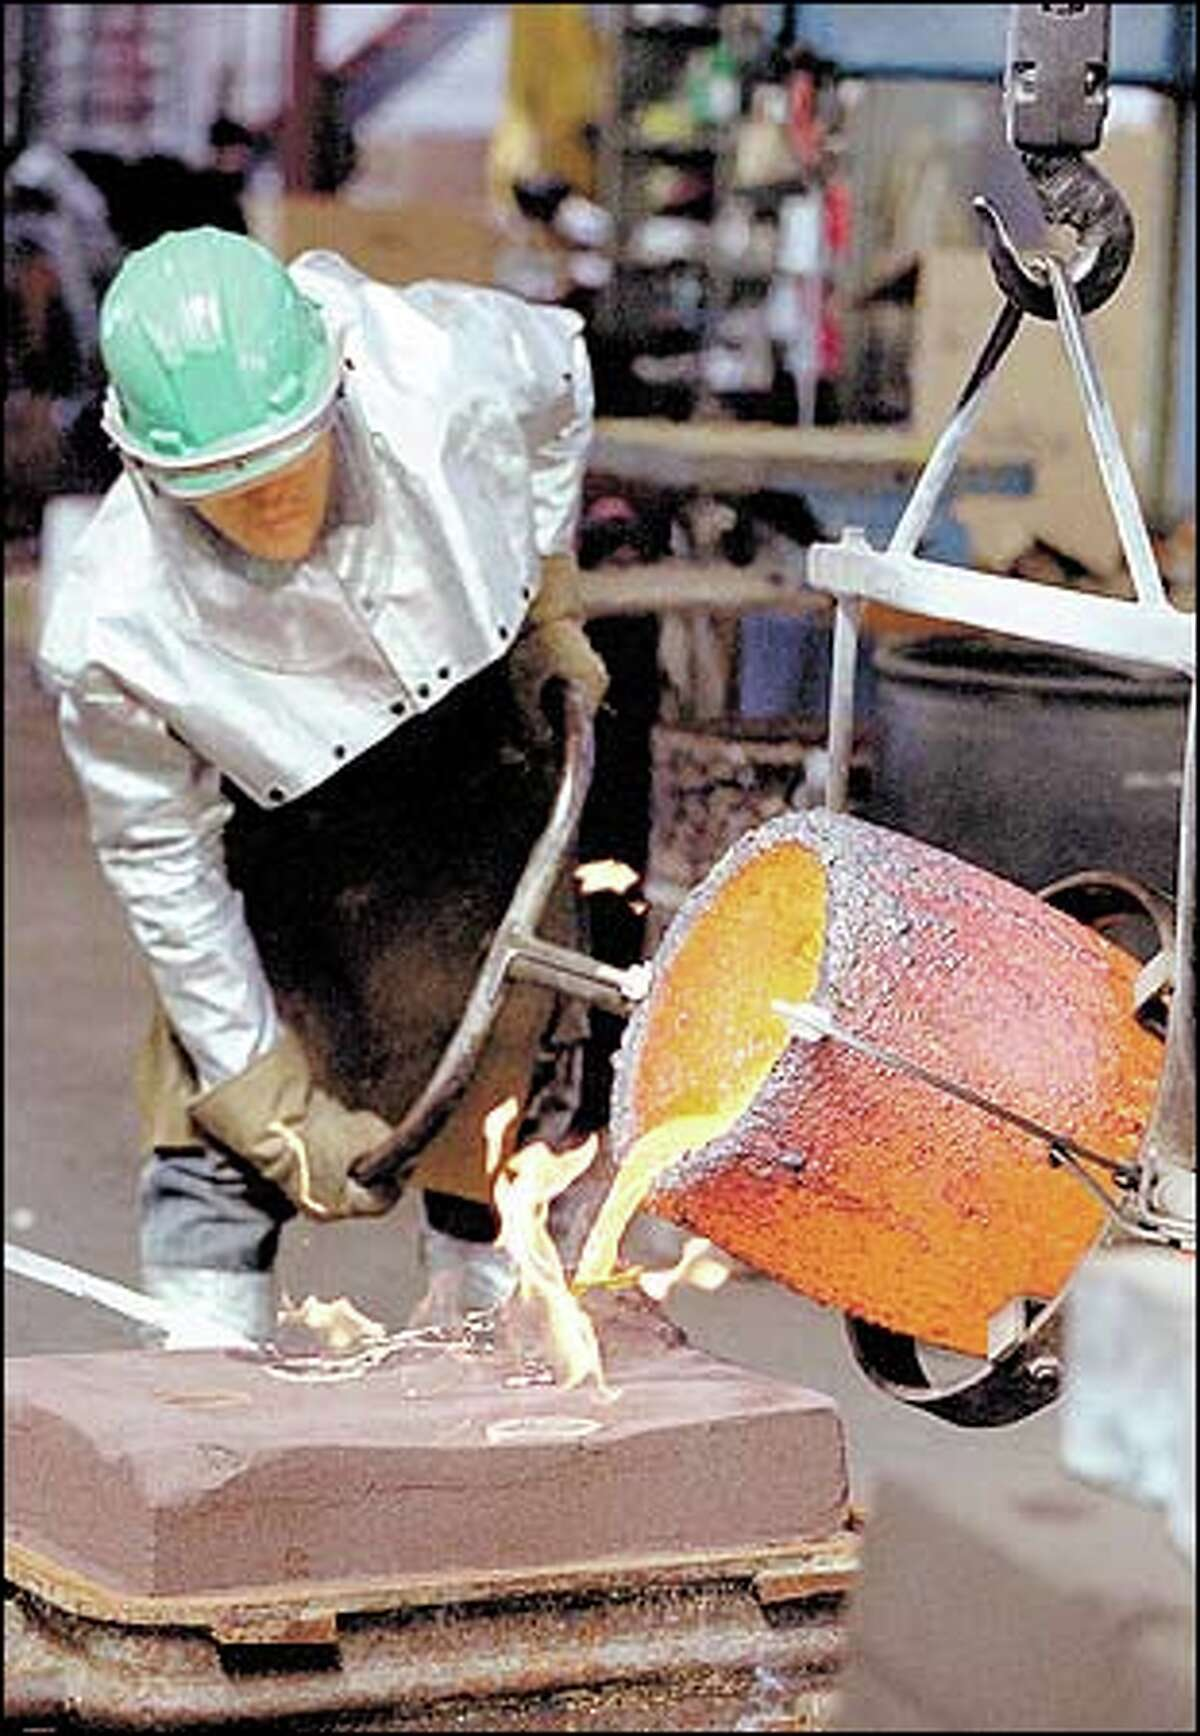 Aaron Combs, a melter/molder for Irish Foundry under the West Seattle viaduct, pours bronze into a mold.